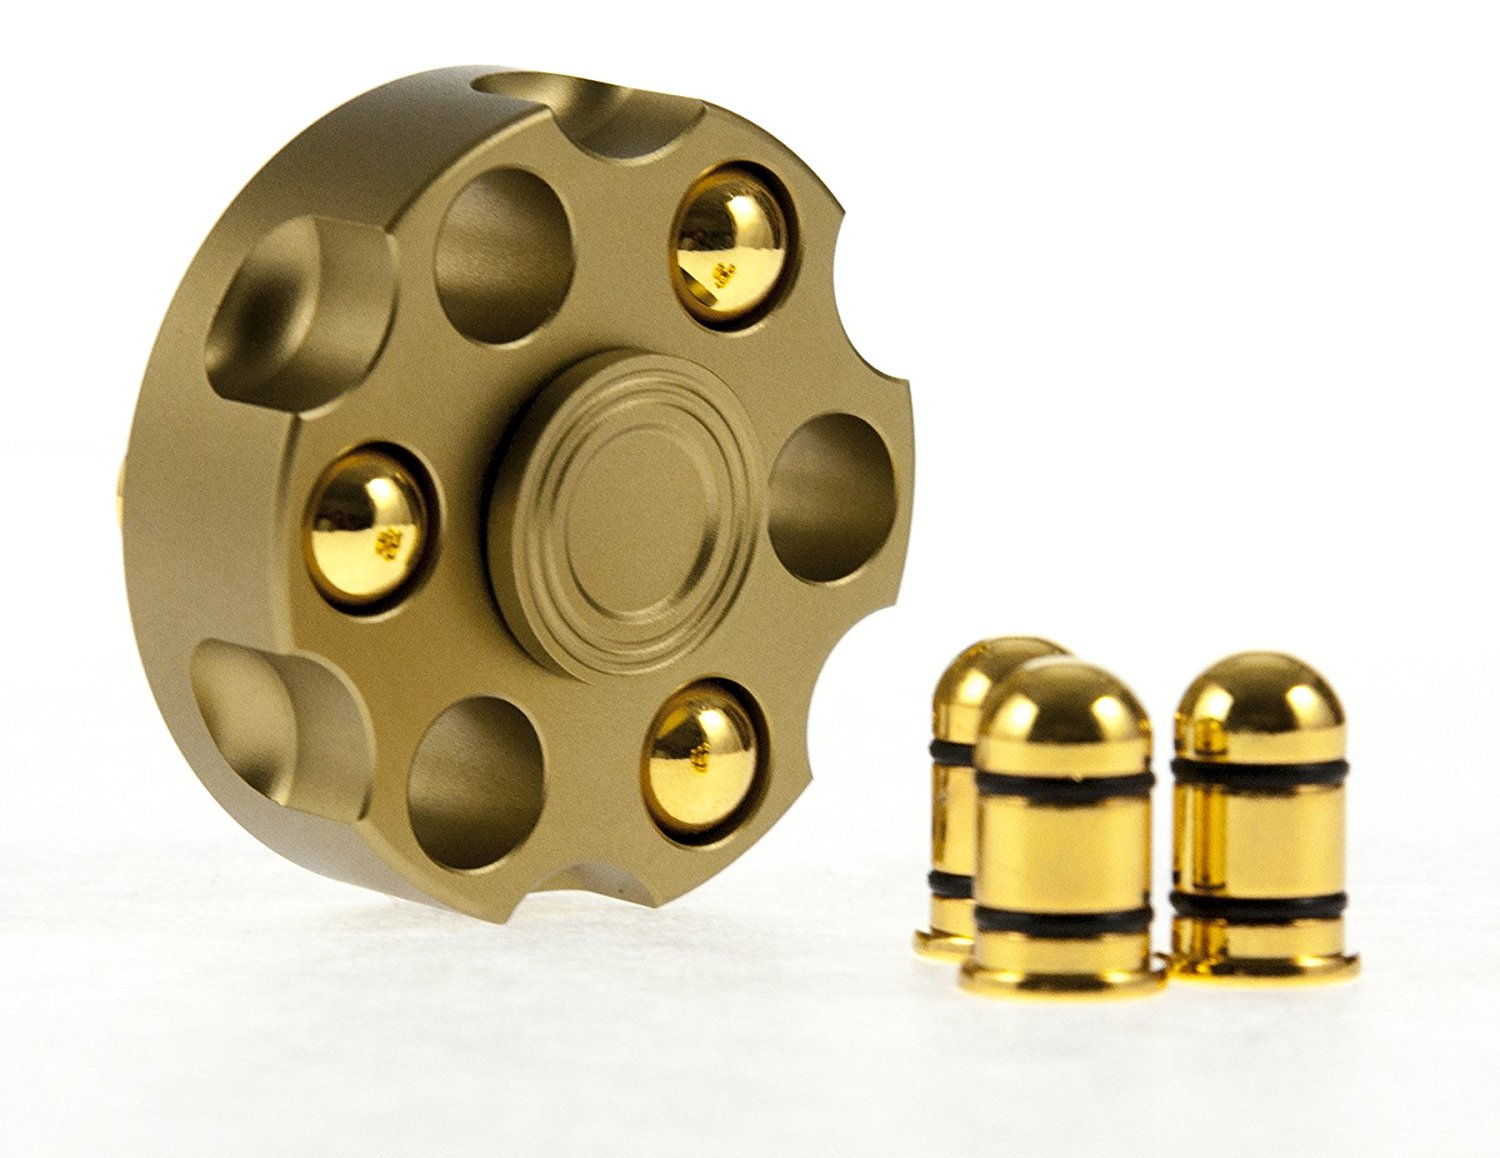 Golden Bullet Six Shooter EDC Metal Fidget Spinner All Products